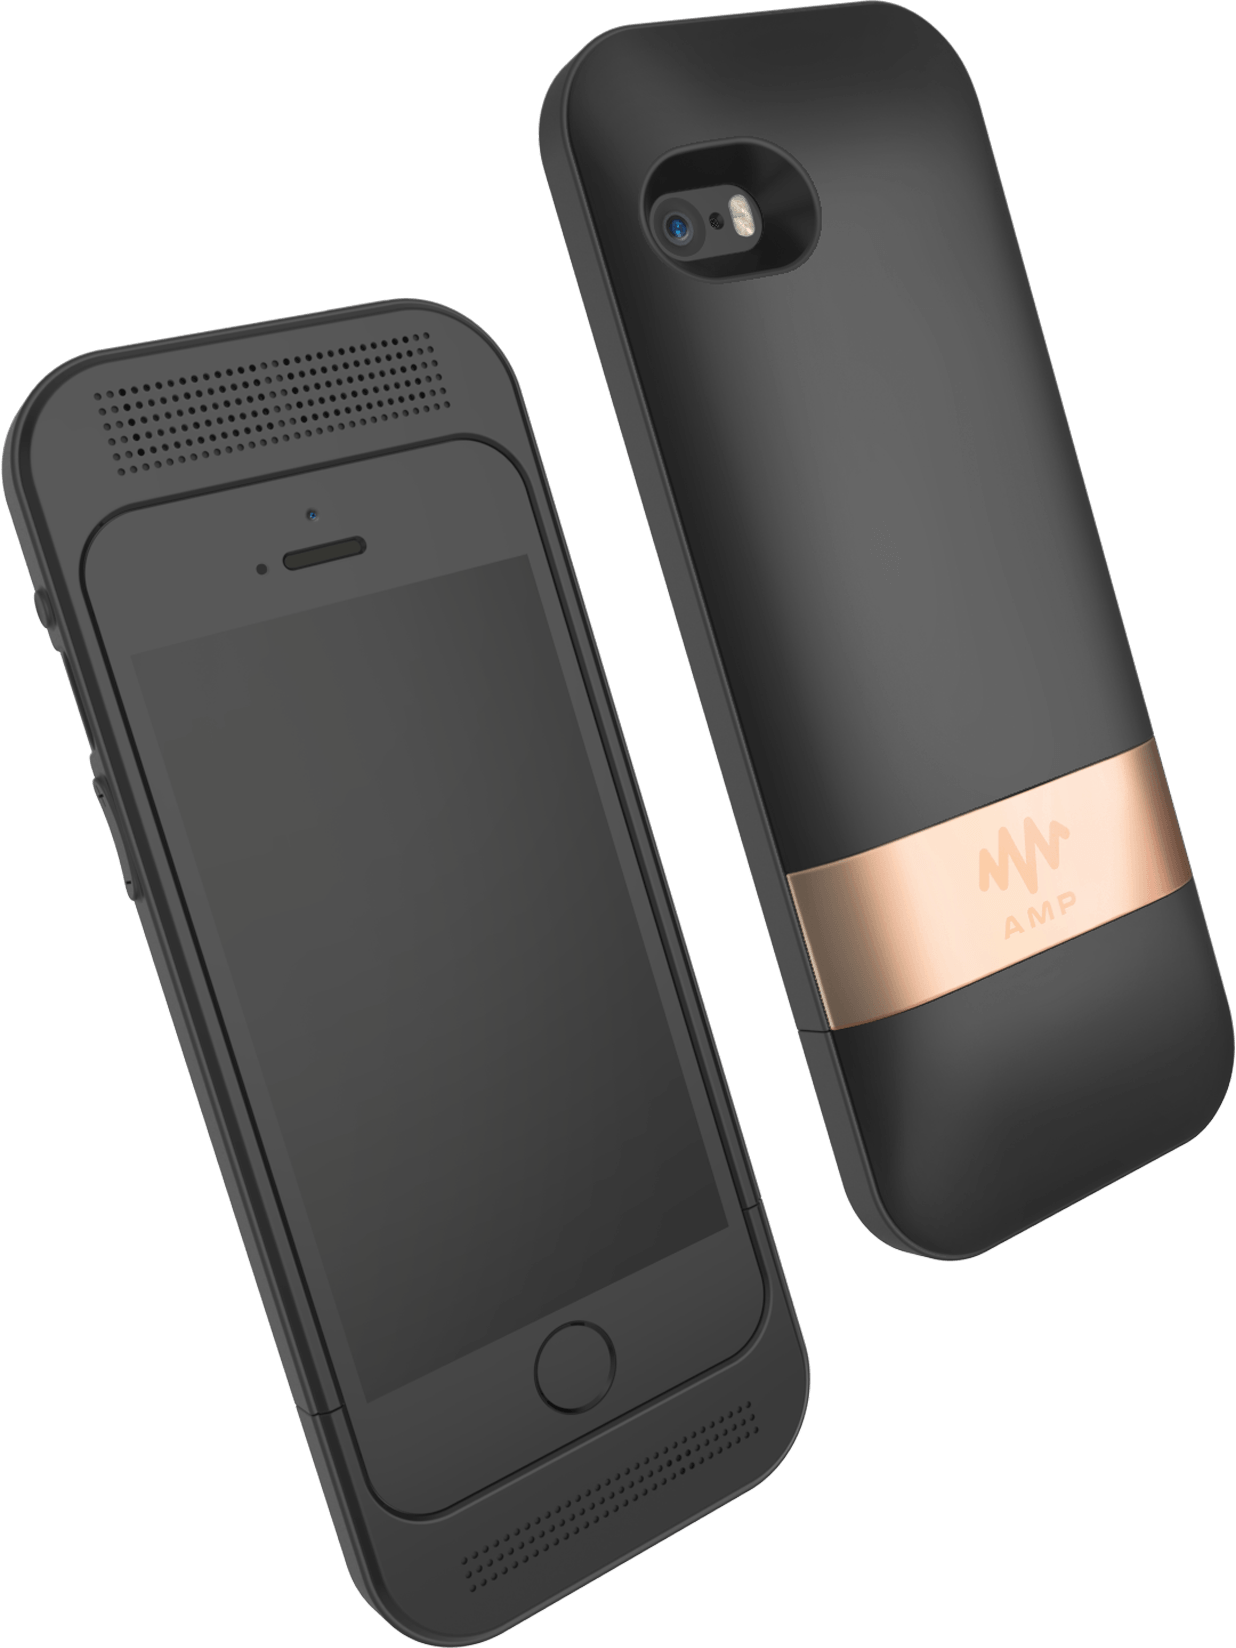 5 High-Tech Smartphone Cases That Go Beyond Protection